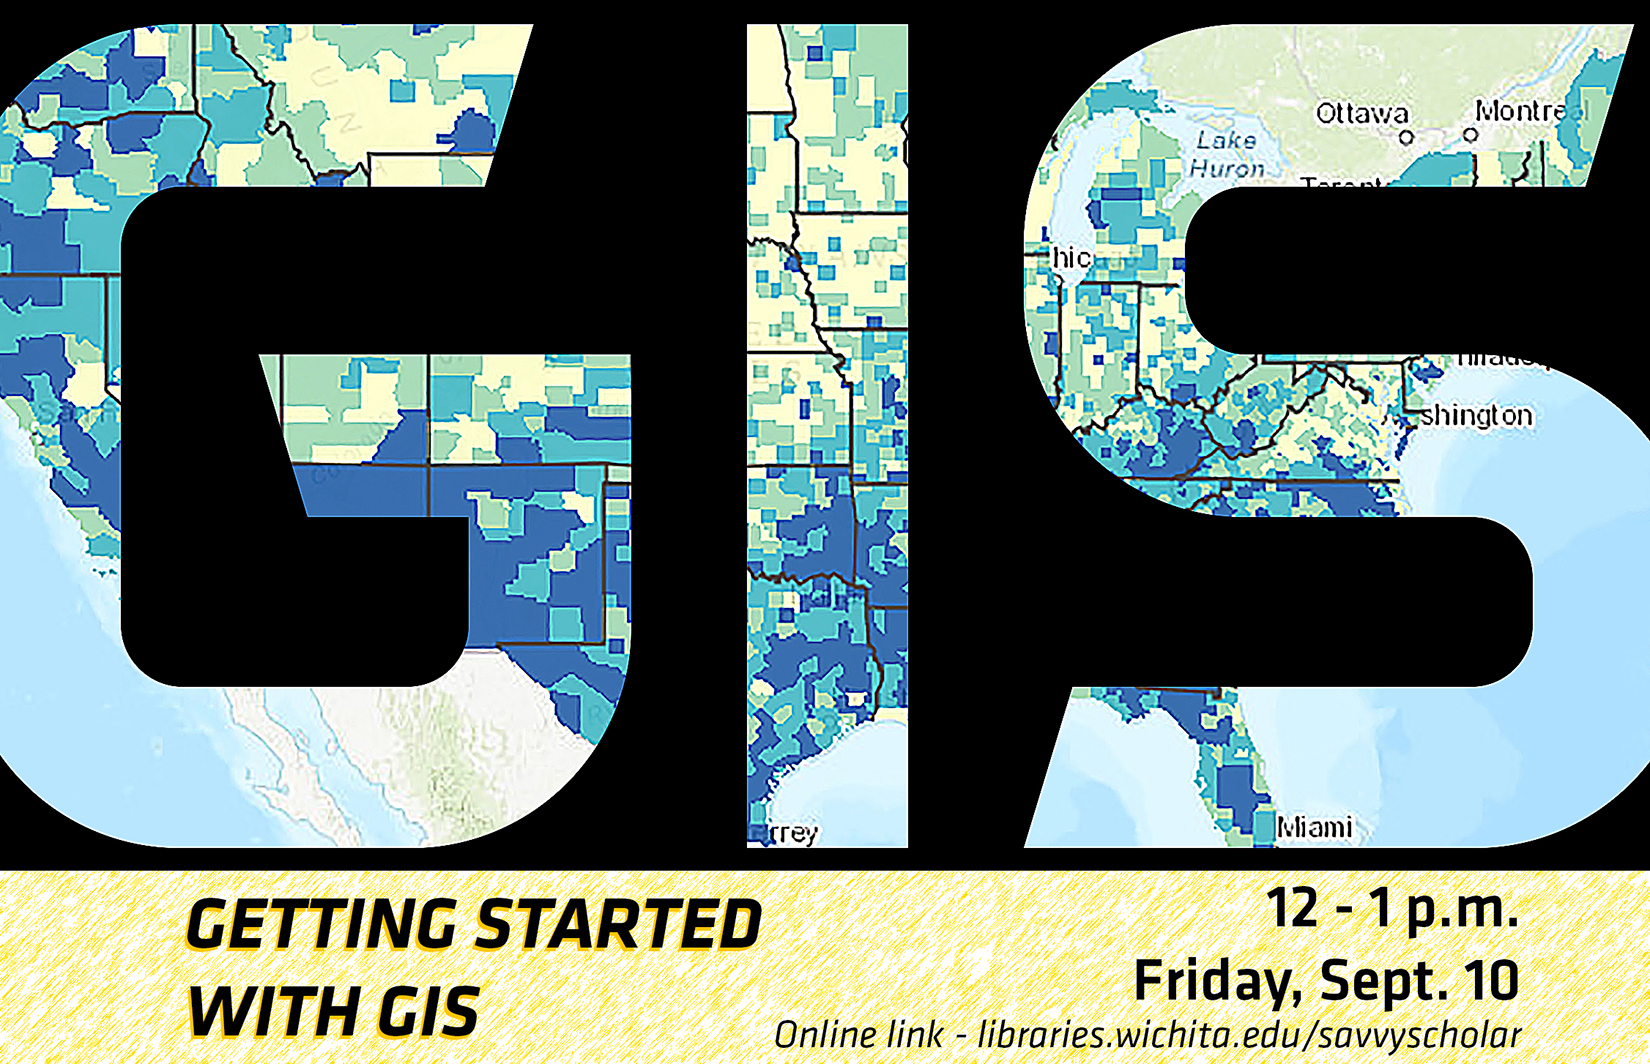 Getting Started with GIS - 12 - 1 p.m. Friday, Sept. 10 - libraries.wichita.edu/savvyscholar.